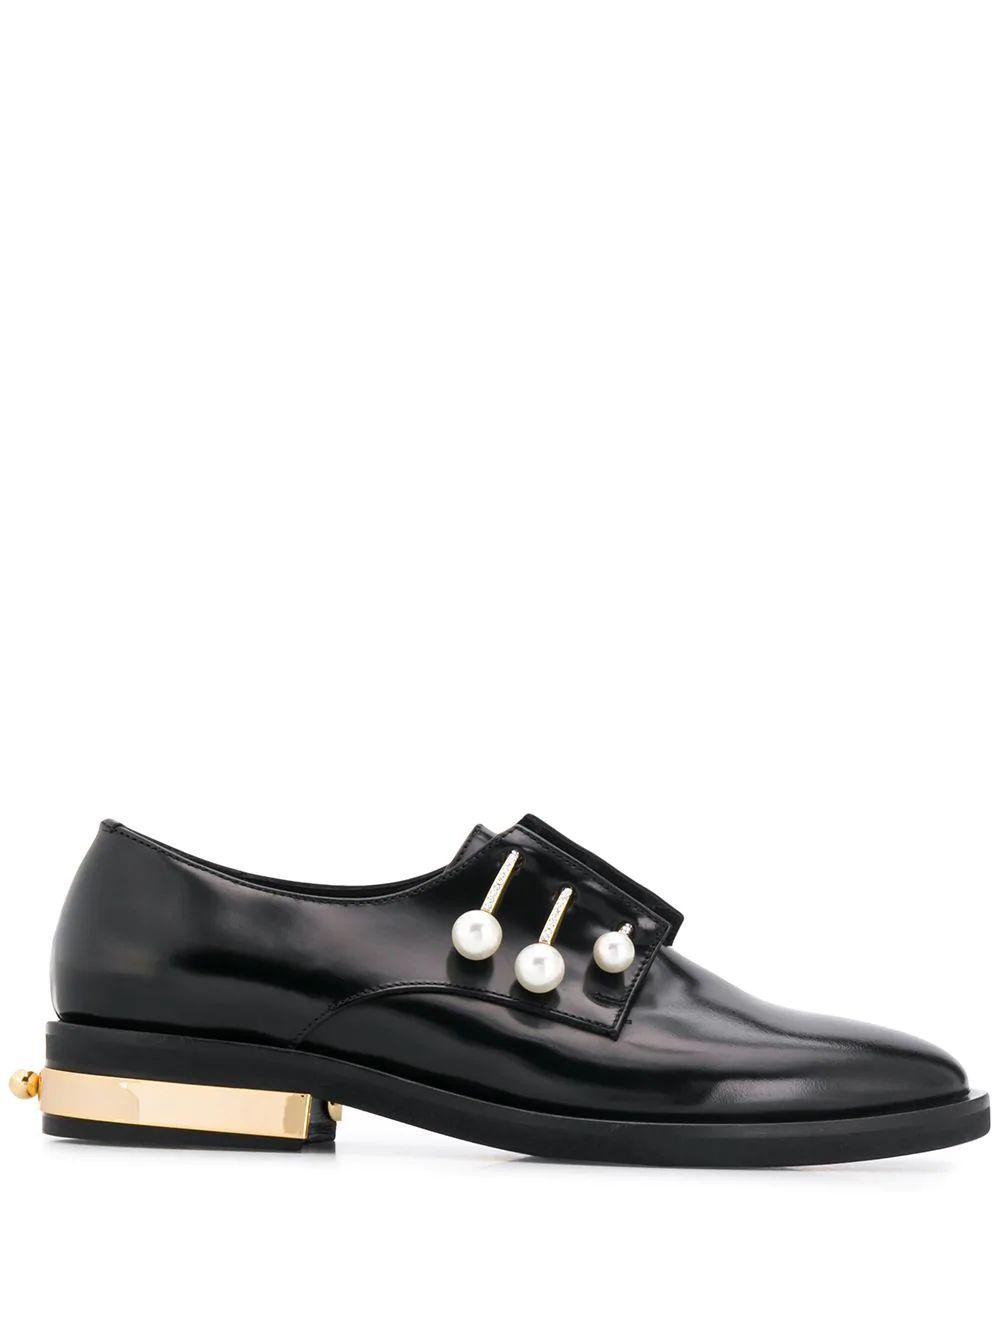 Fernanda 10mm 3 Bar Calf Brogue